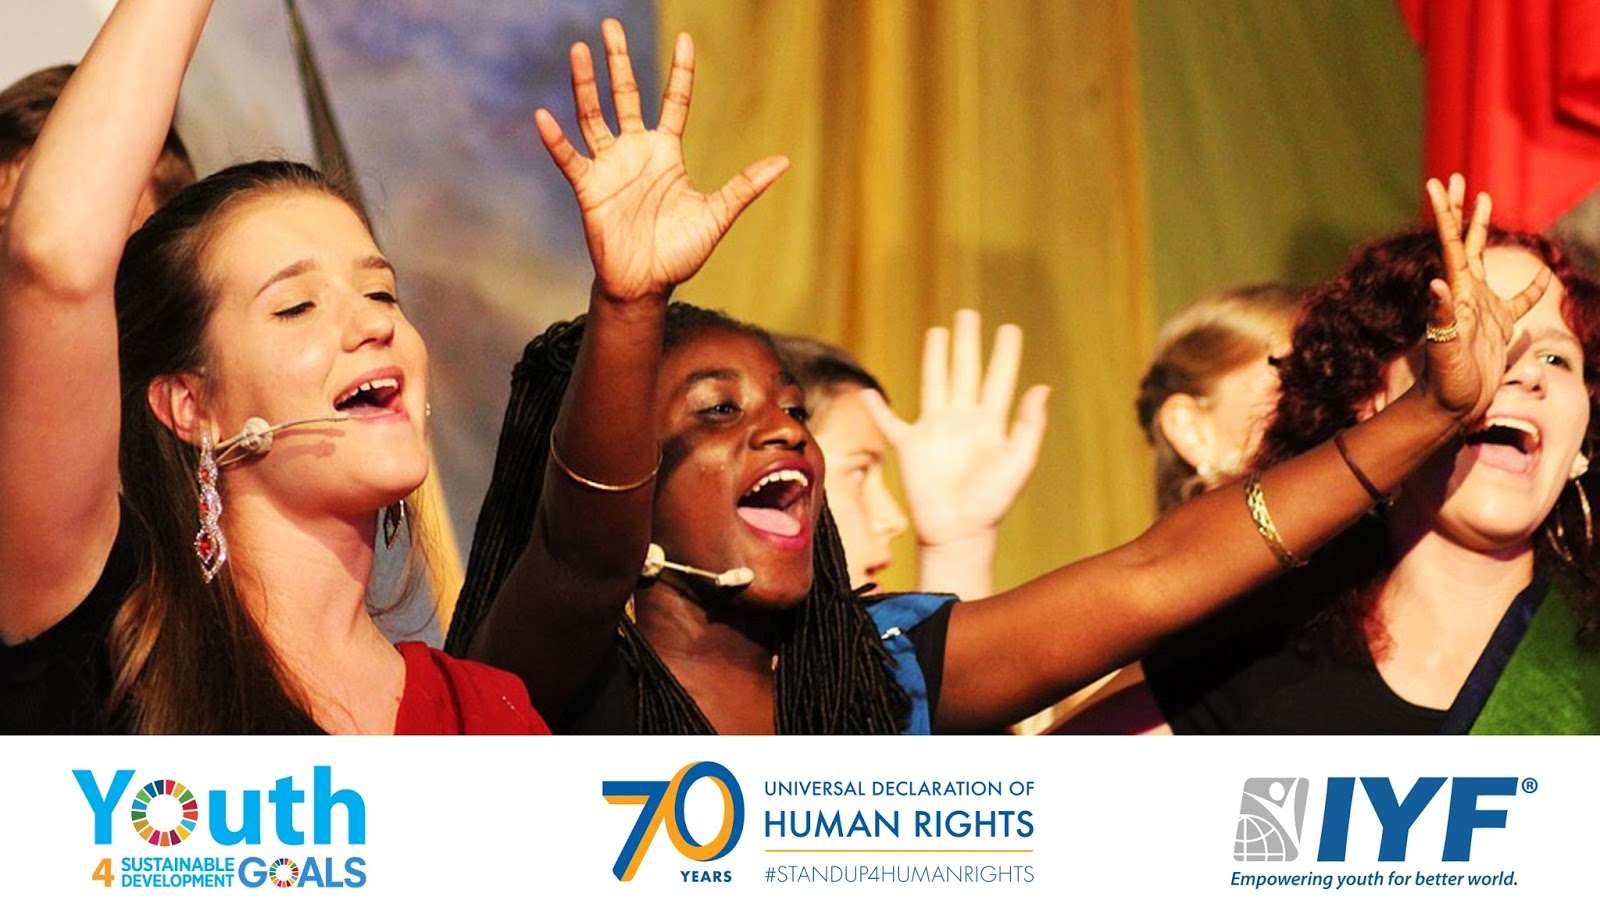 Youth Role in Upholding Human Rights